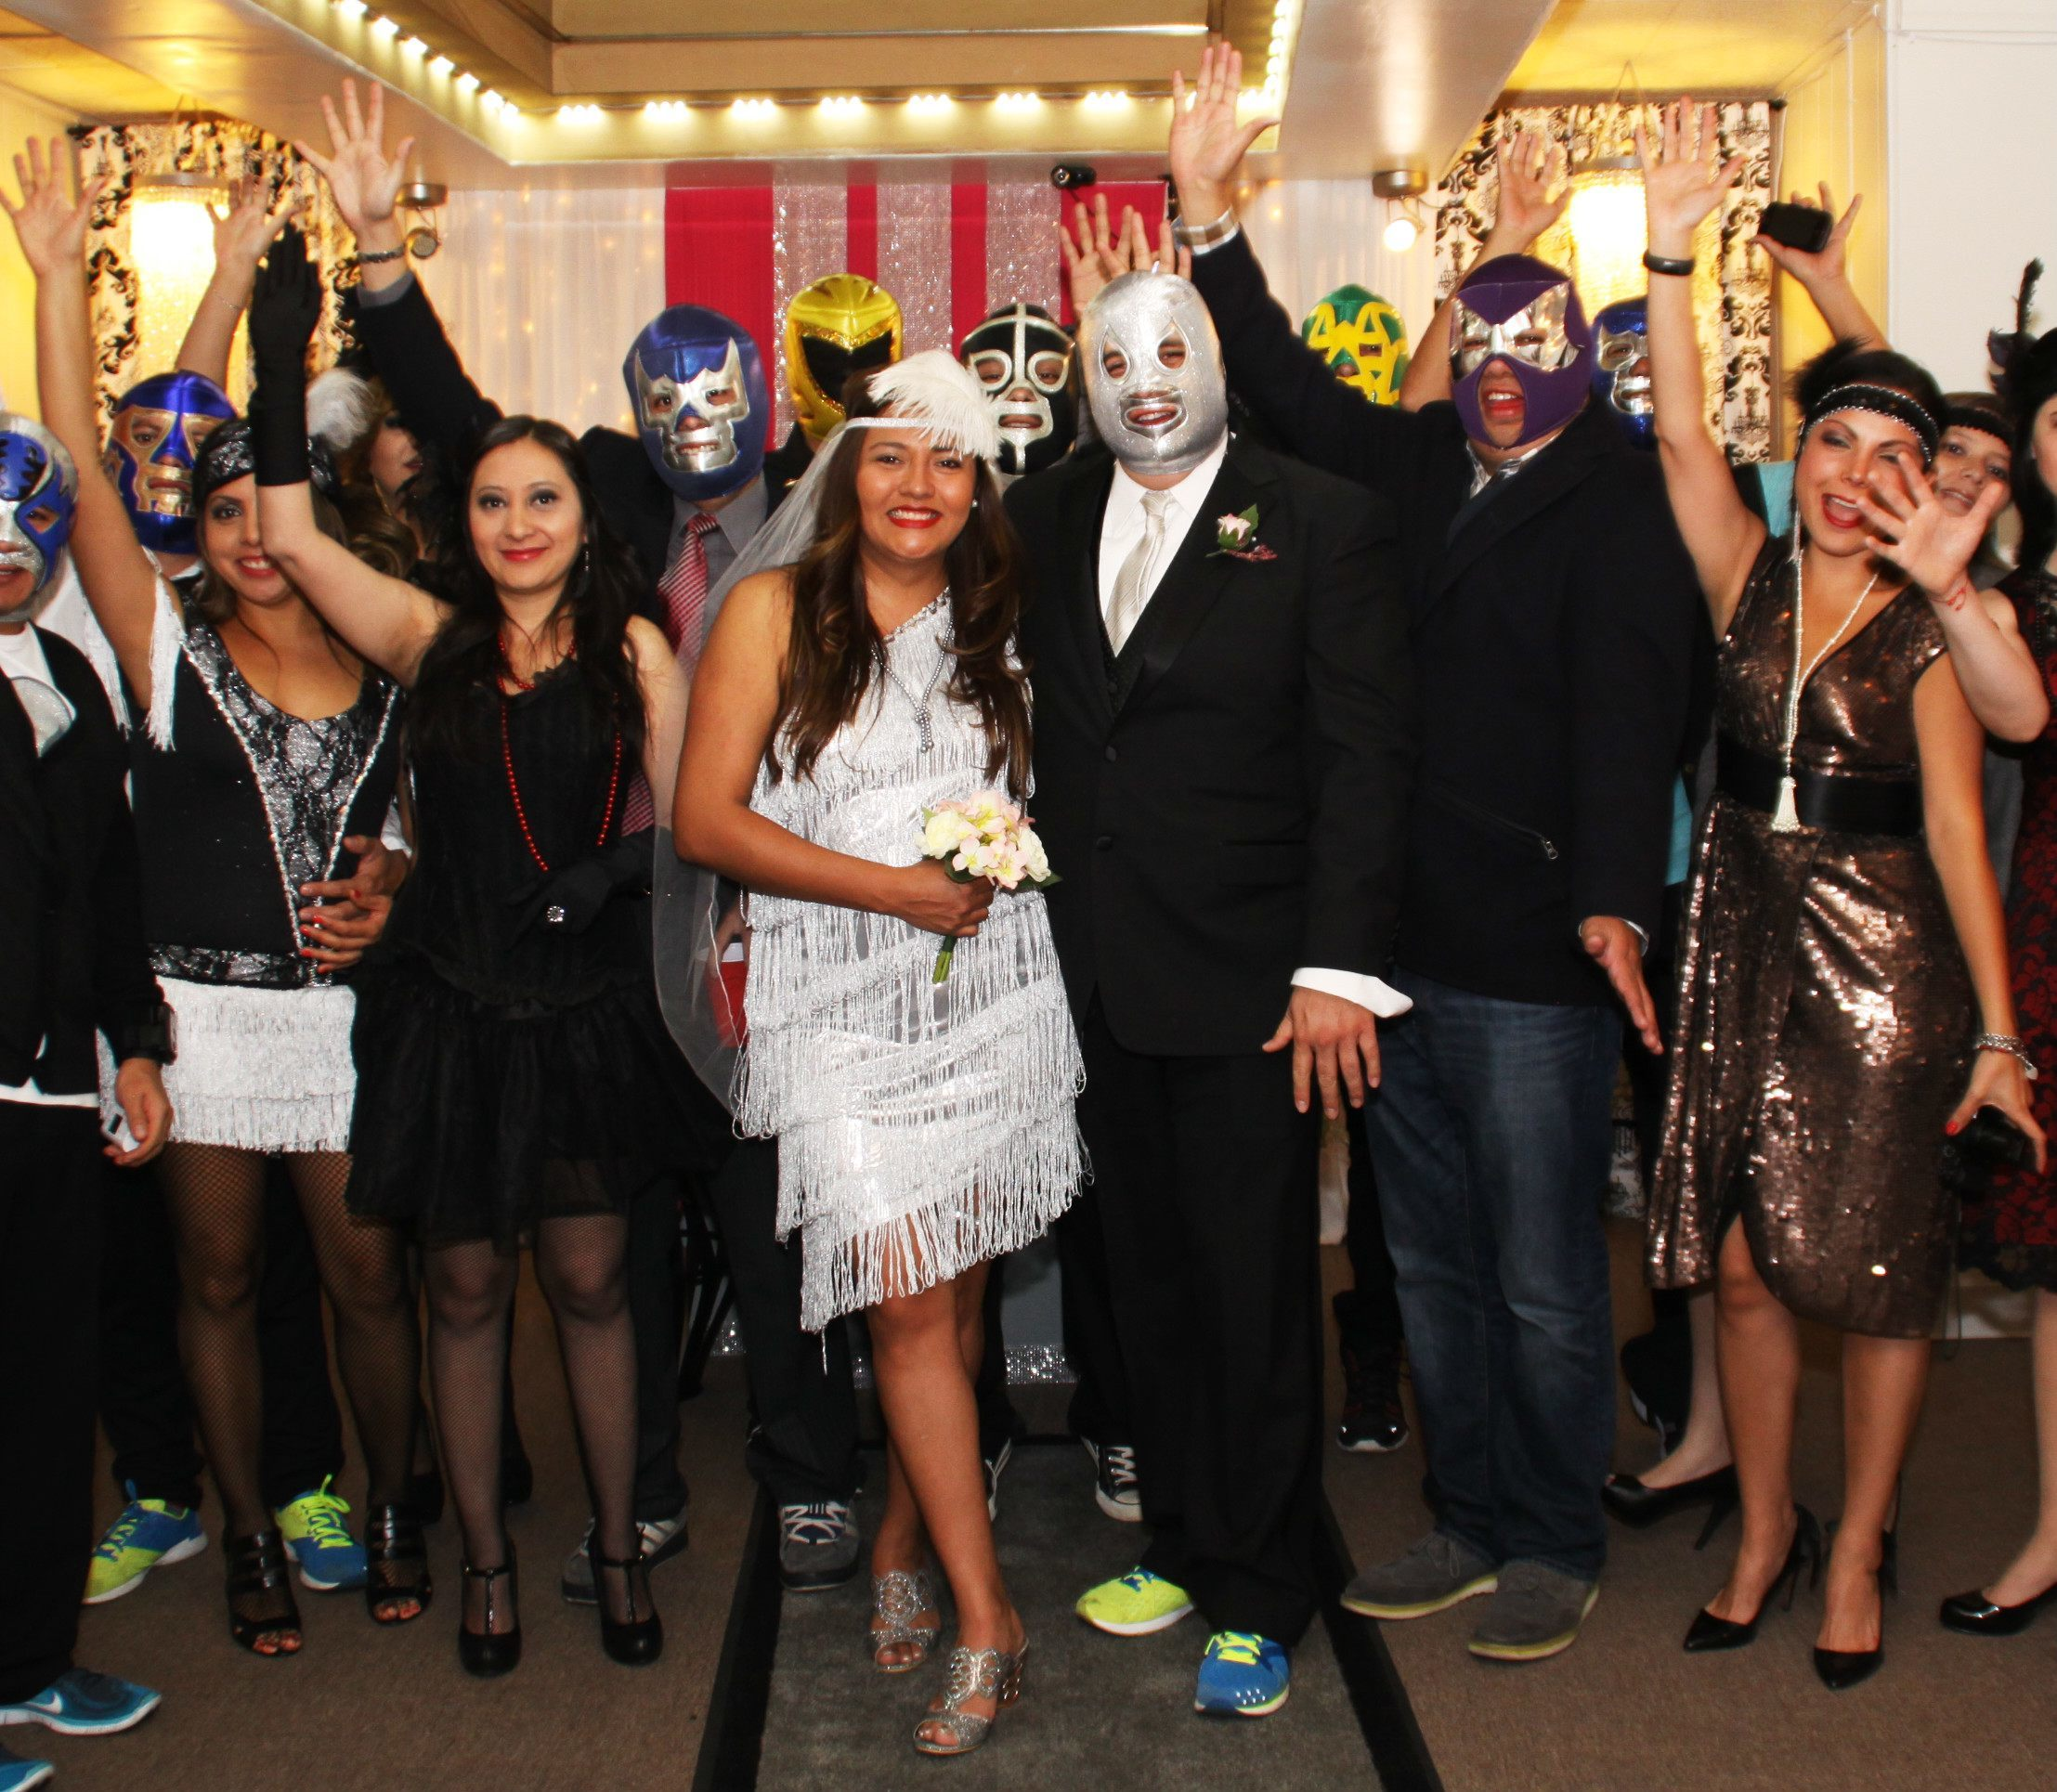 men wear wrestling masks, women wear flapper dresses at themed wedding.